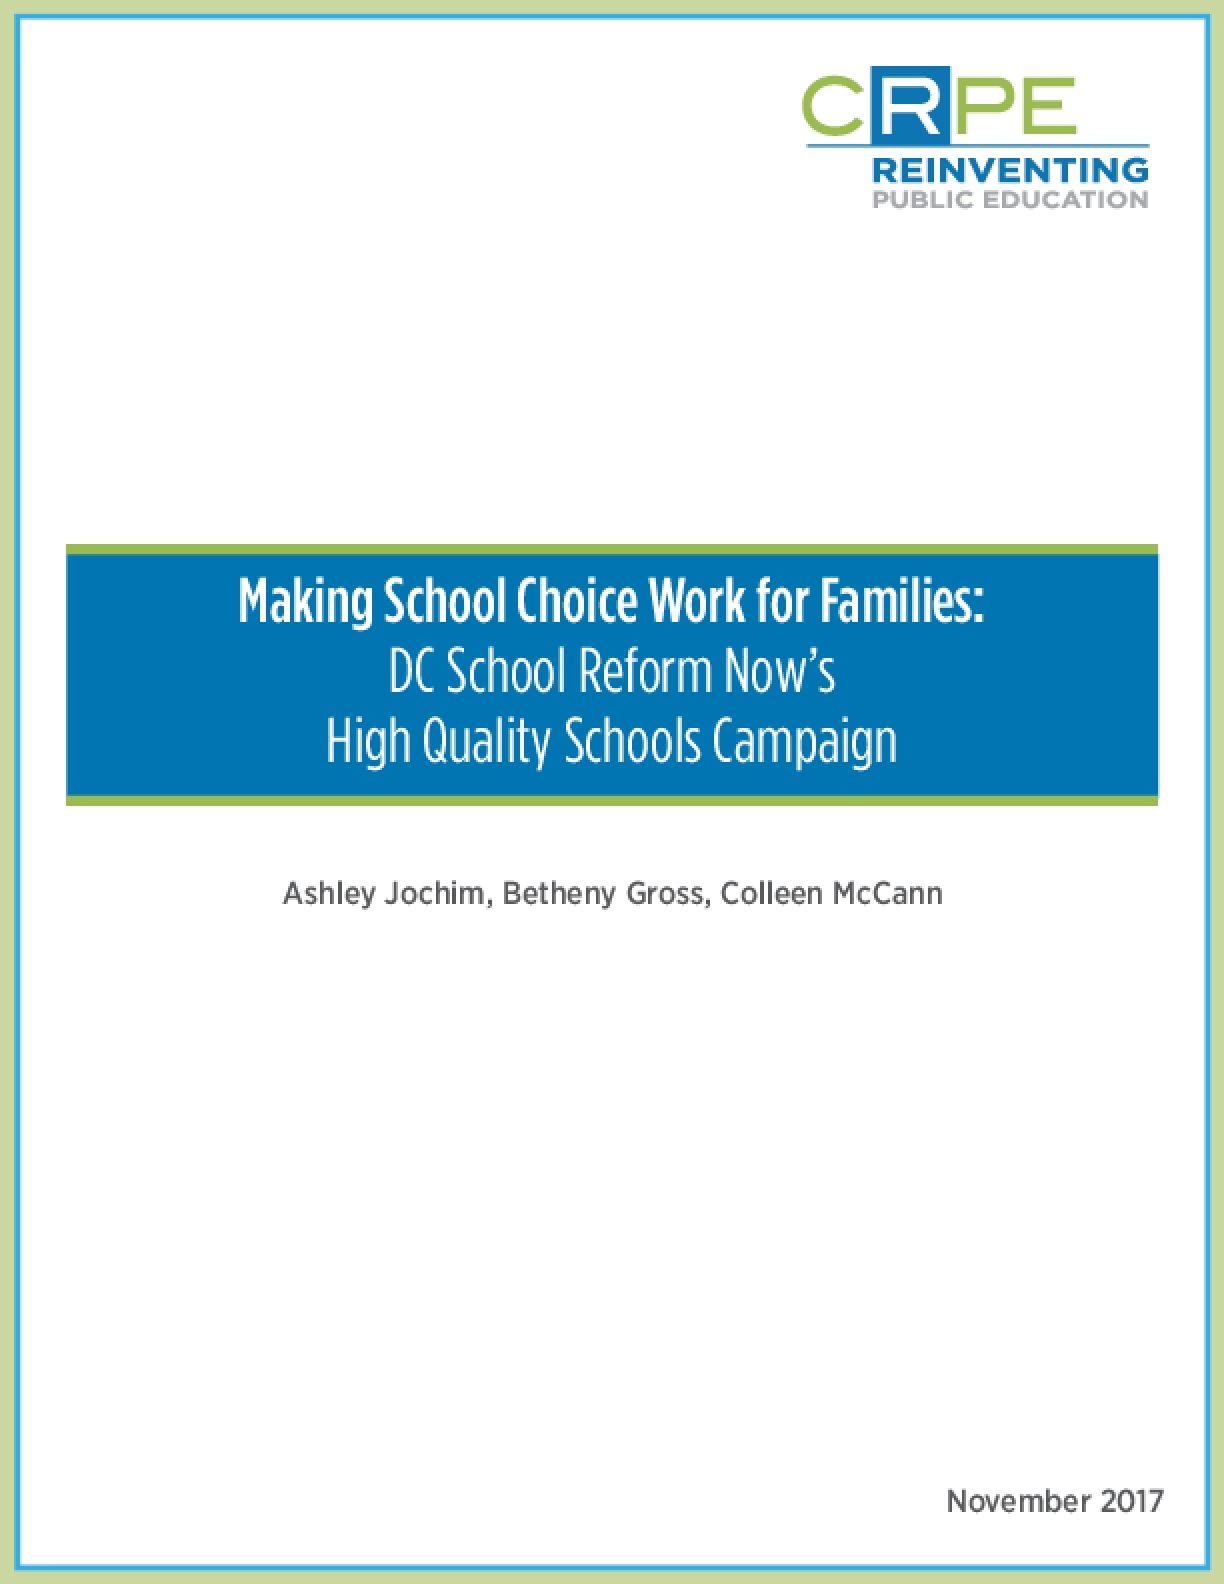 Making School Choice Work for Families: DC School Reform Now's High Quality Schools Campaign